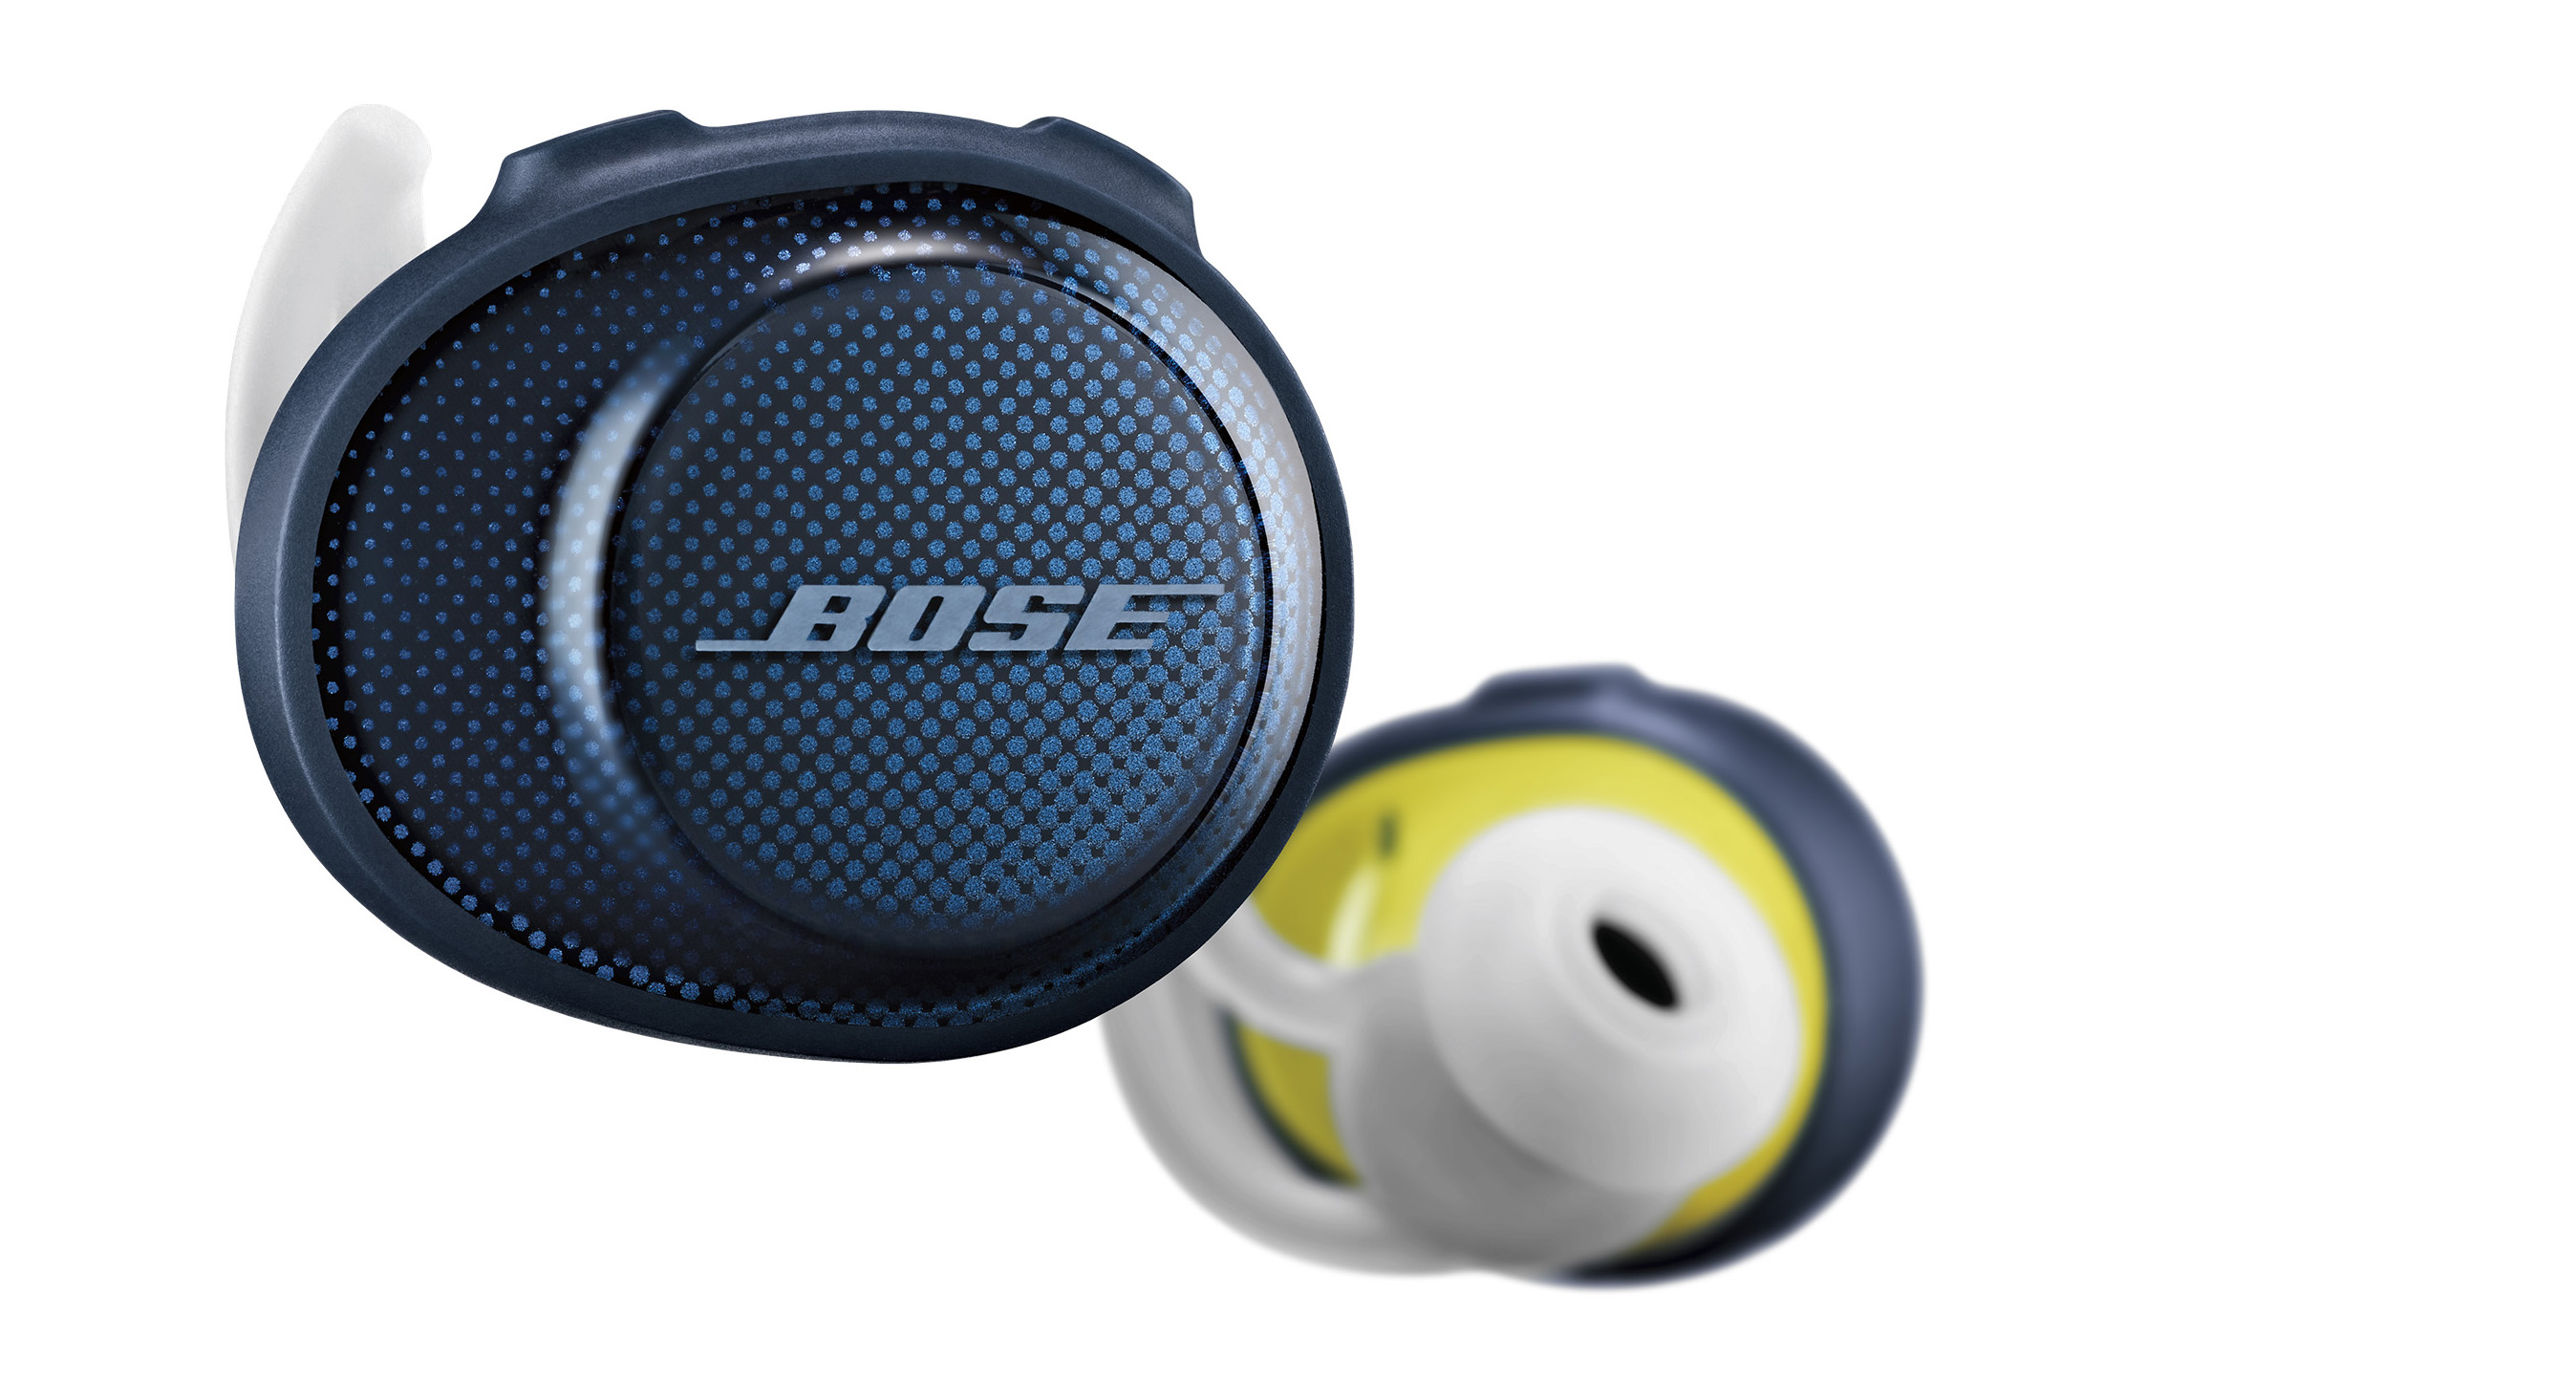 Picture of Bose wireless headphones